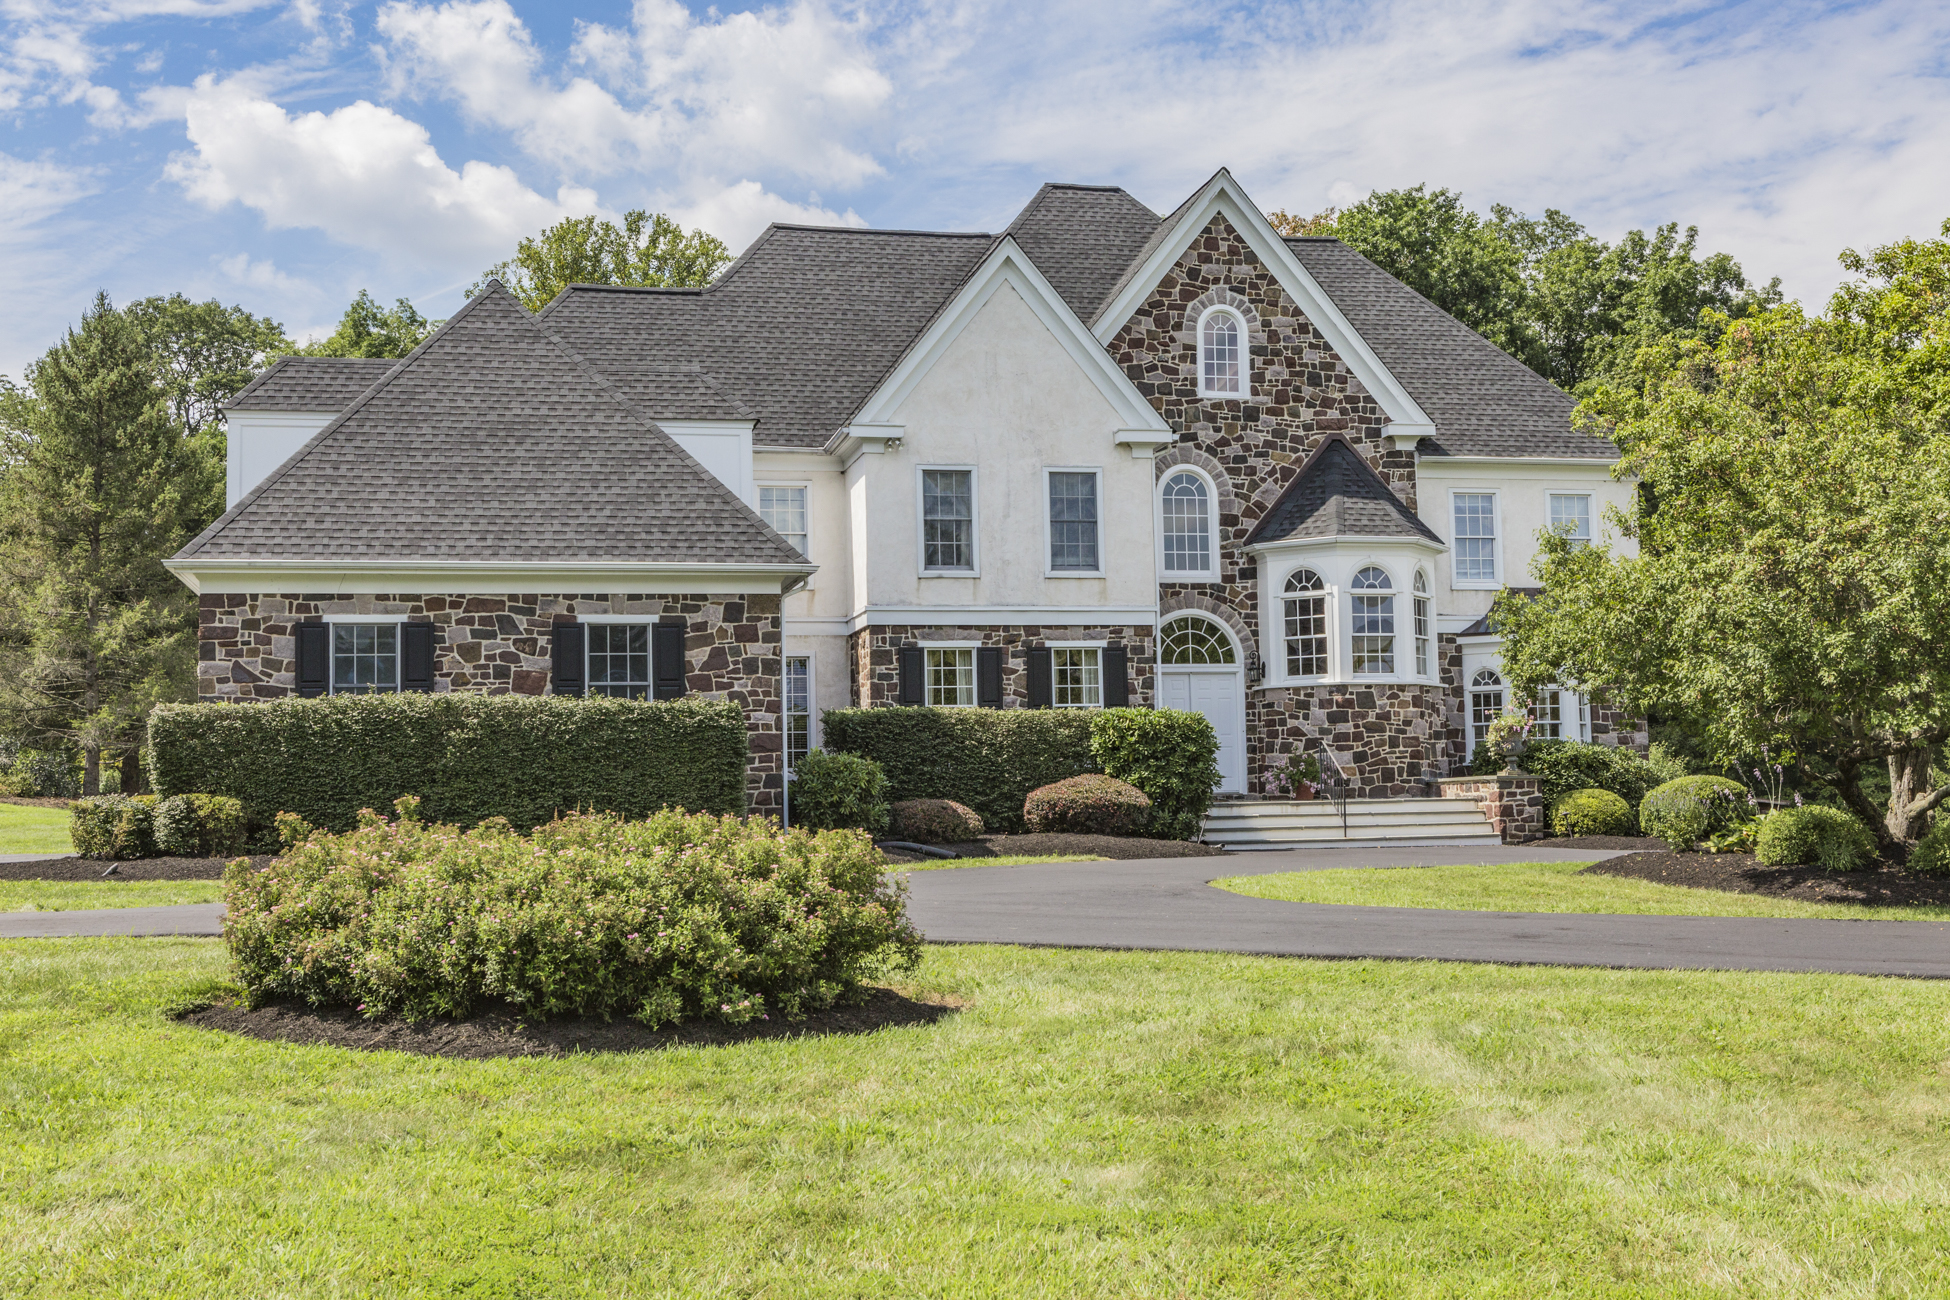 Single Family Home for Sale at Tuscan-Inspired Luxury 9 Chase Hollow Road Hopewell, 08525 United States